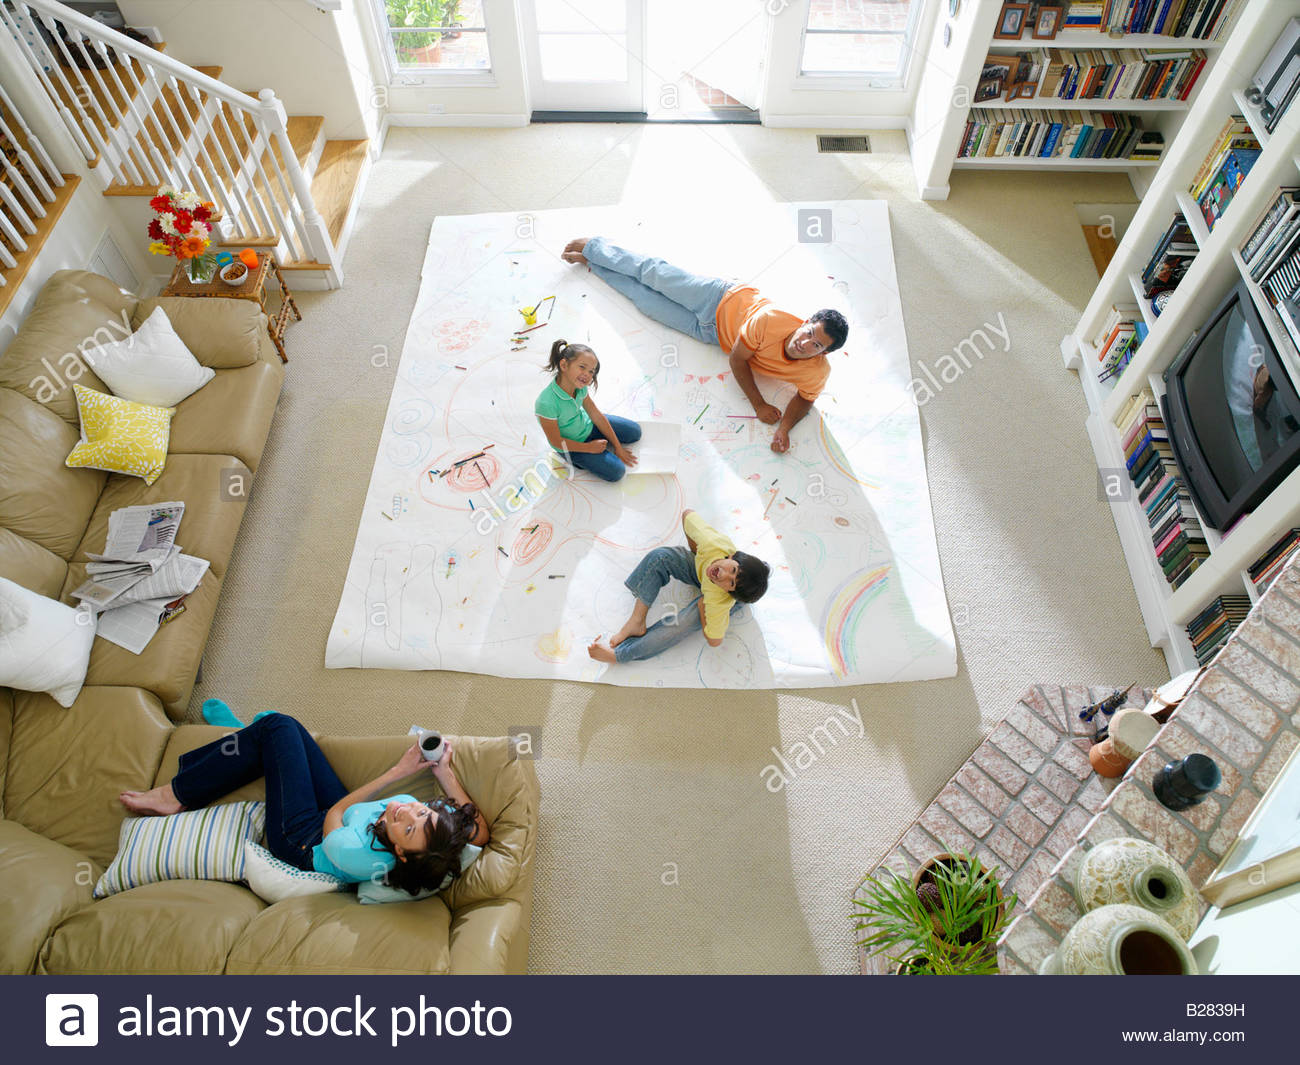 Family of four in living room, drawing on large piece of paper on floor, elevated view - Stock Image